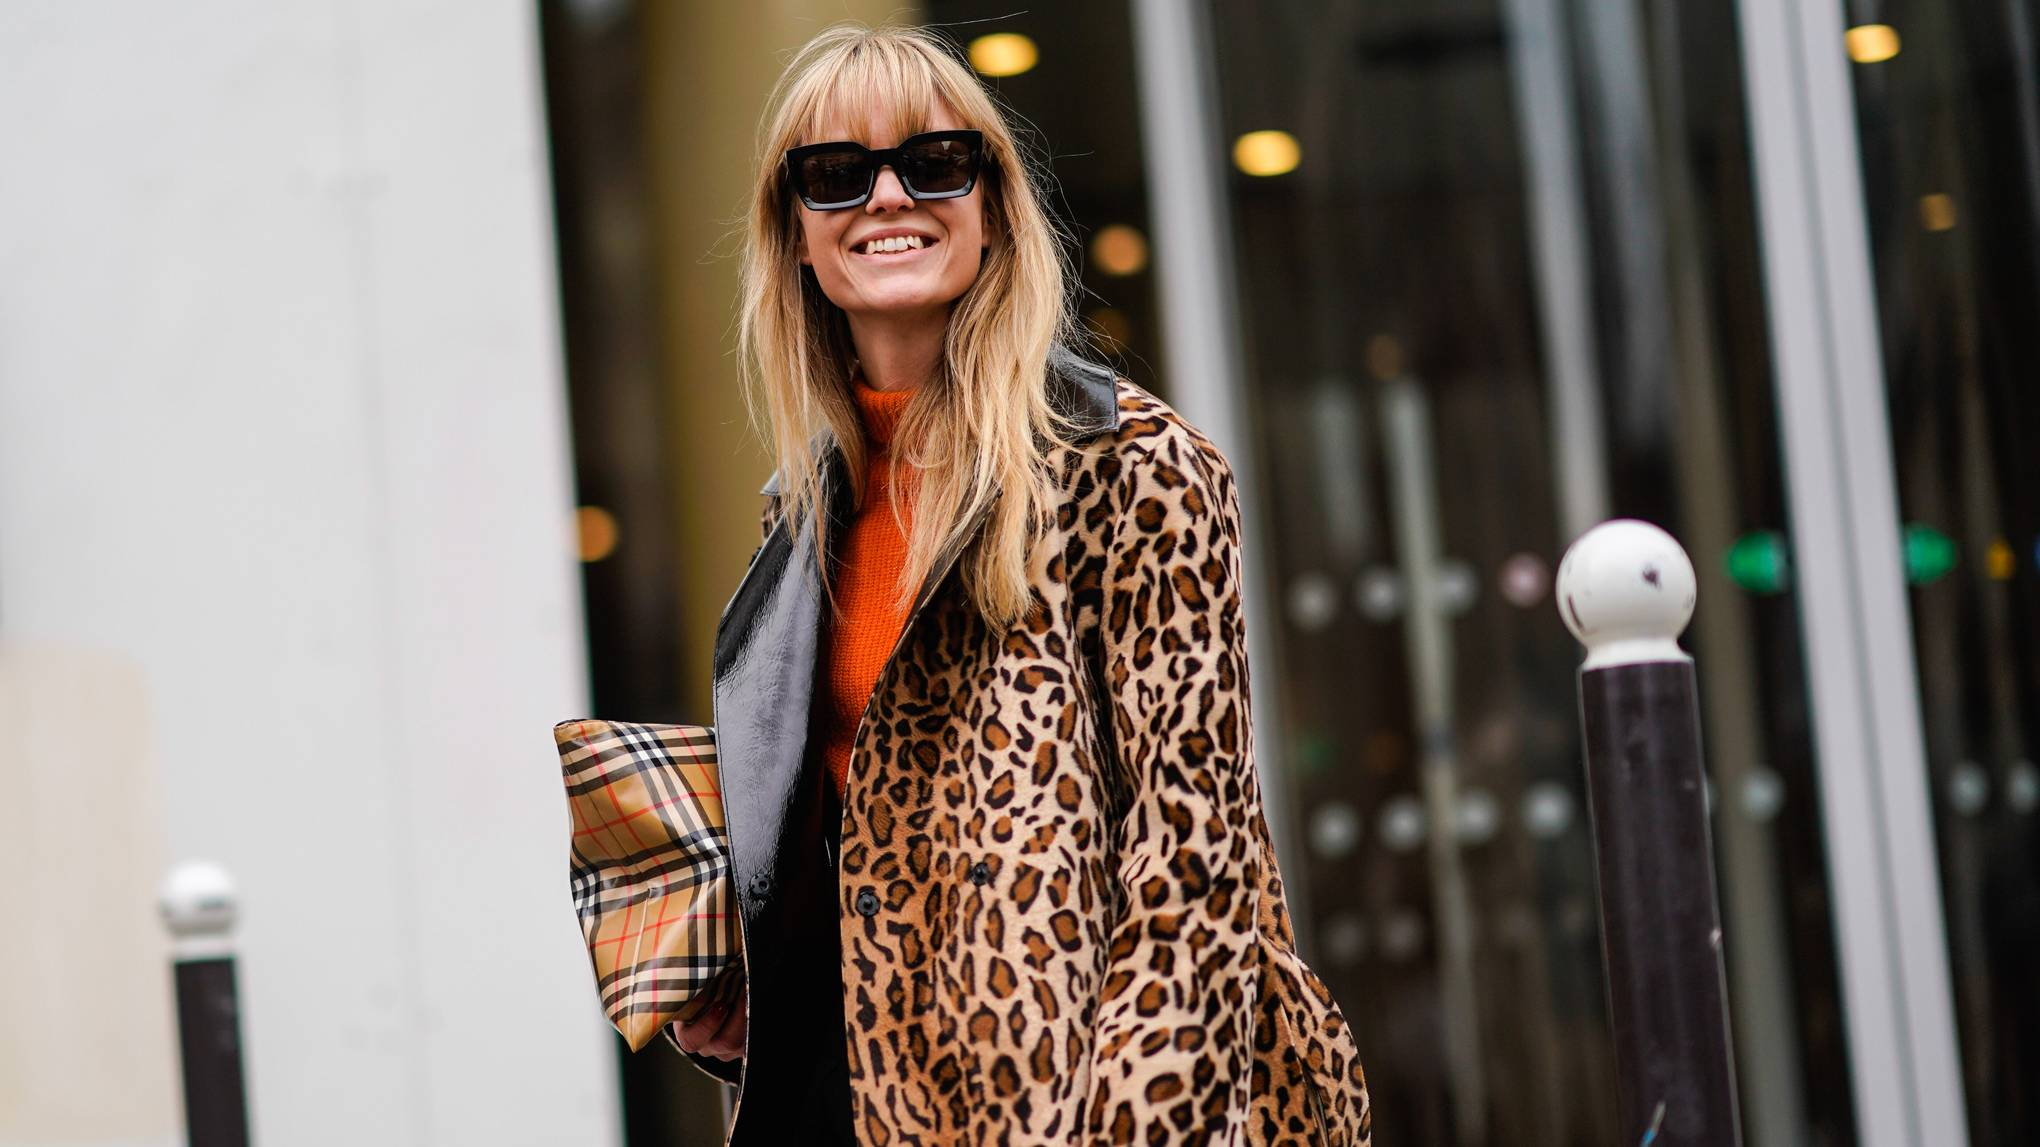 8b55aa2923 How to Wear Leopard Print and Avoid the Kat Slater Look